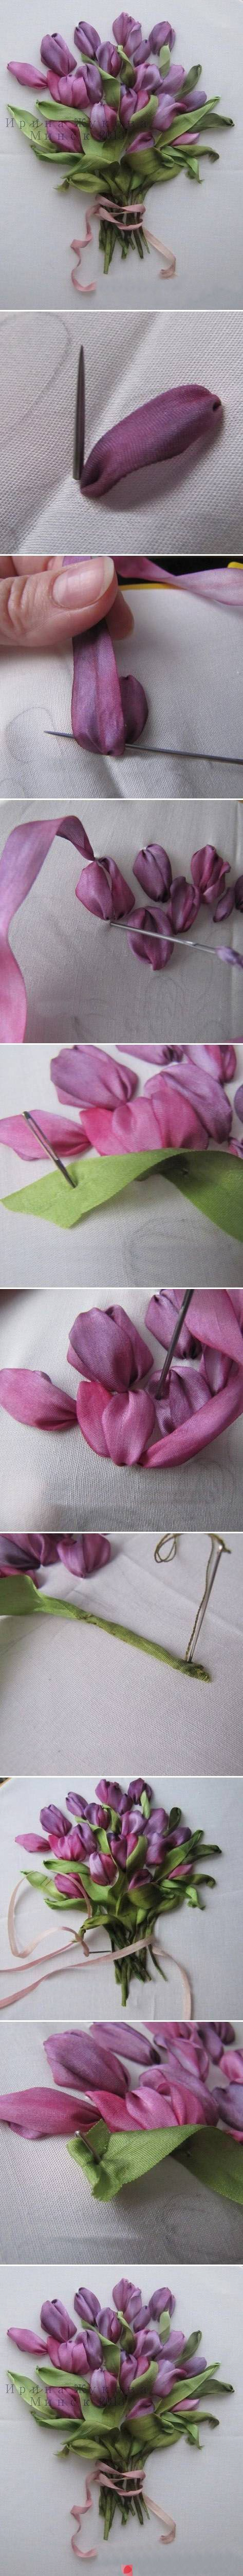 best Sewing images on Pinterest Crafts Great ideas and Hand crafts